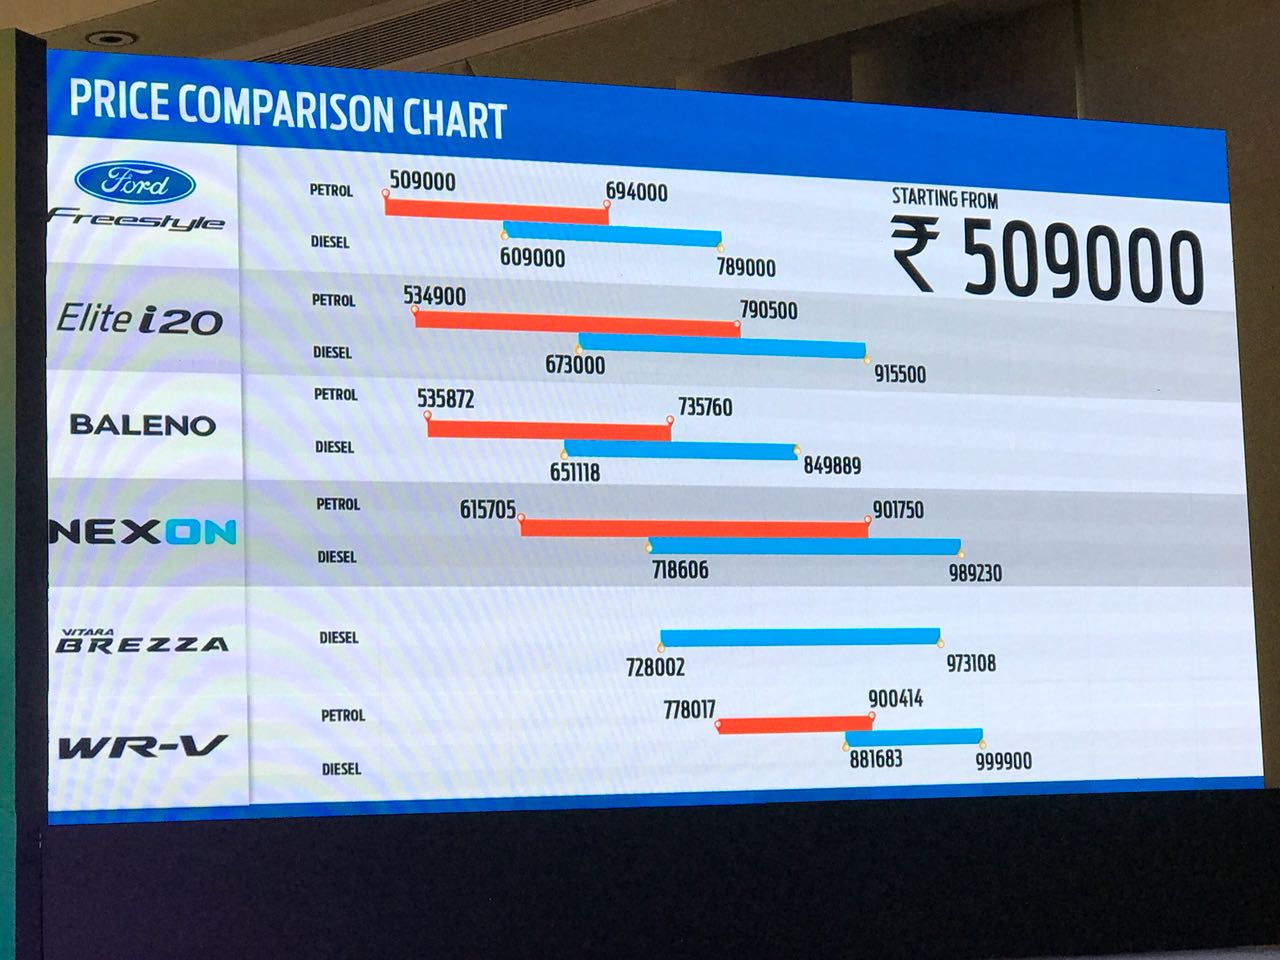 <p>Here is how the Ford Freestyle compares in price to its competition including the Hyundai Elite i20and the Maruti Suzuki Baleno</p>